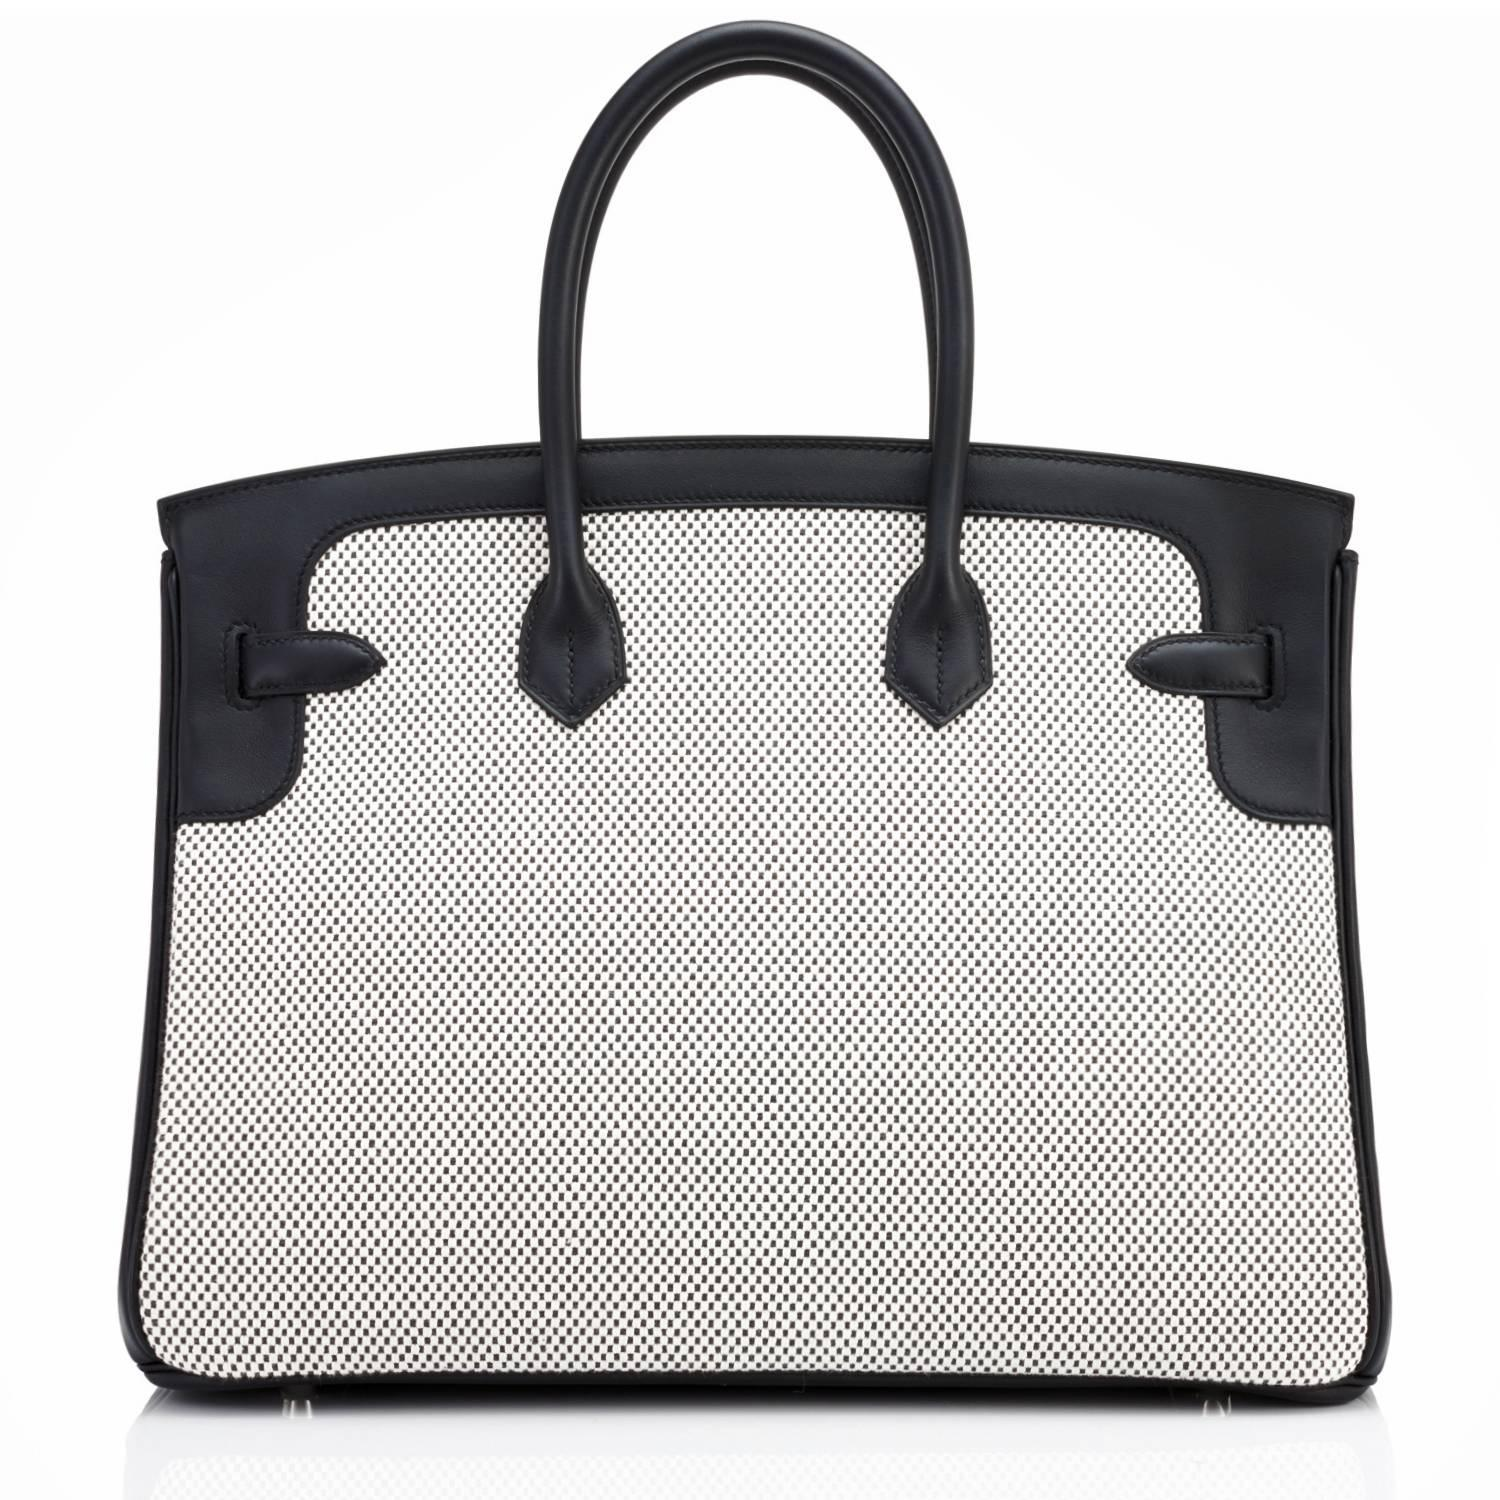 14dfa5528918 Hermes Black Swift Leather Criss Cross Ecru Graphite Toile 35cm Birkin For  Sale at 1stdibs